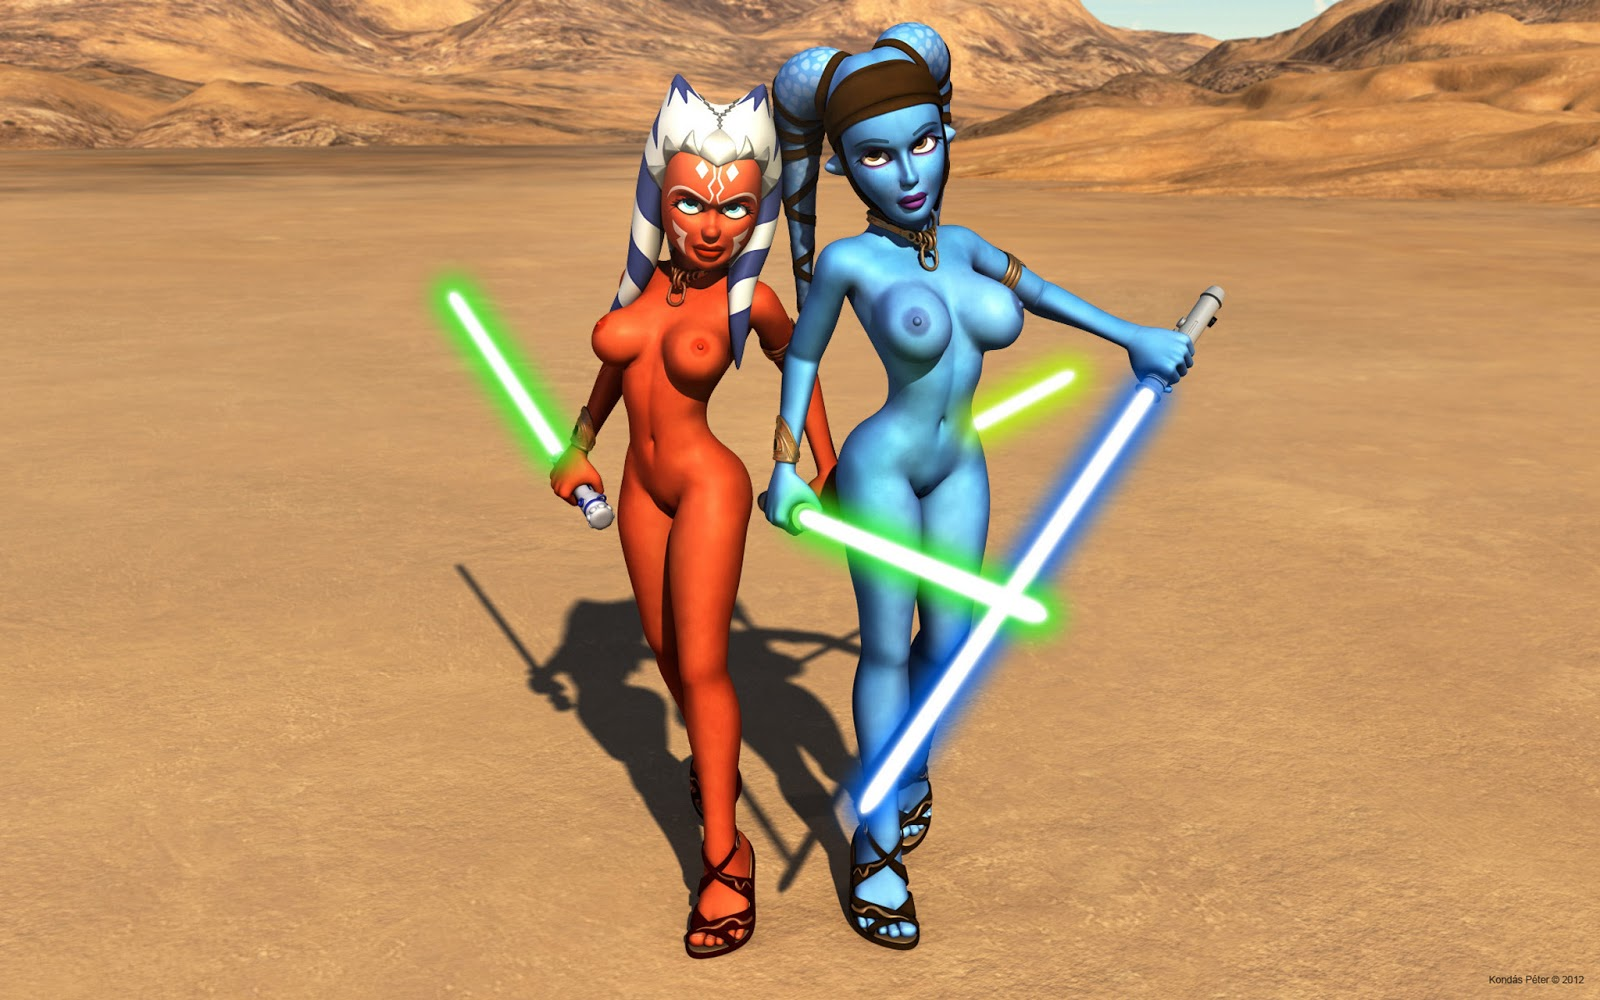 Free star wars and a naked ahsoka  adult image